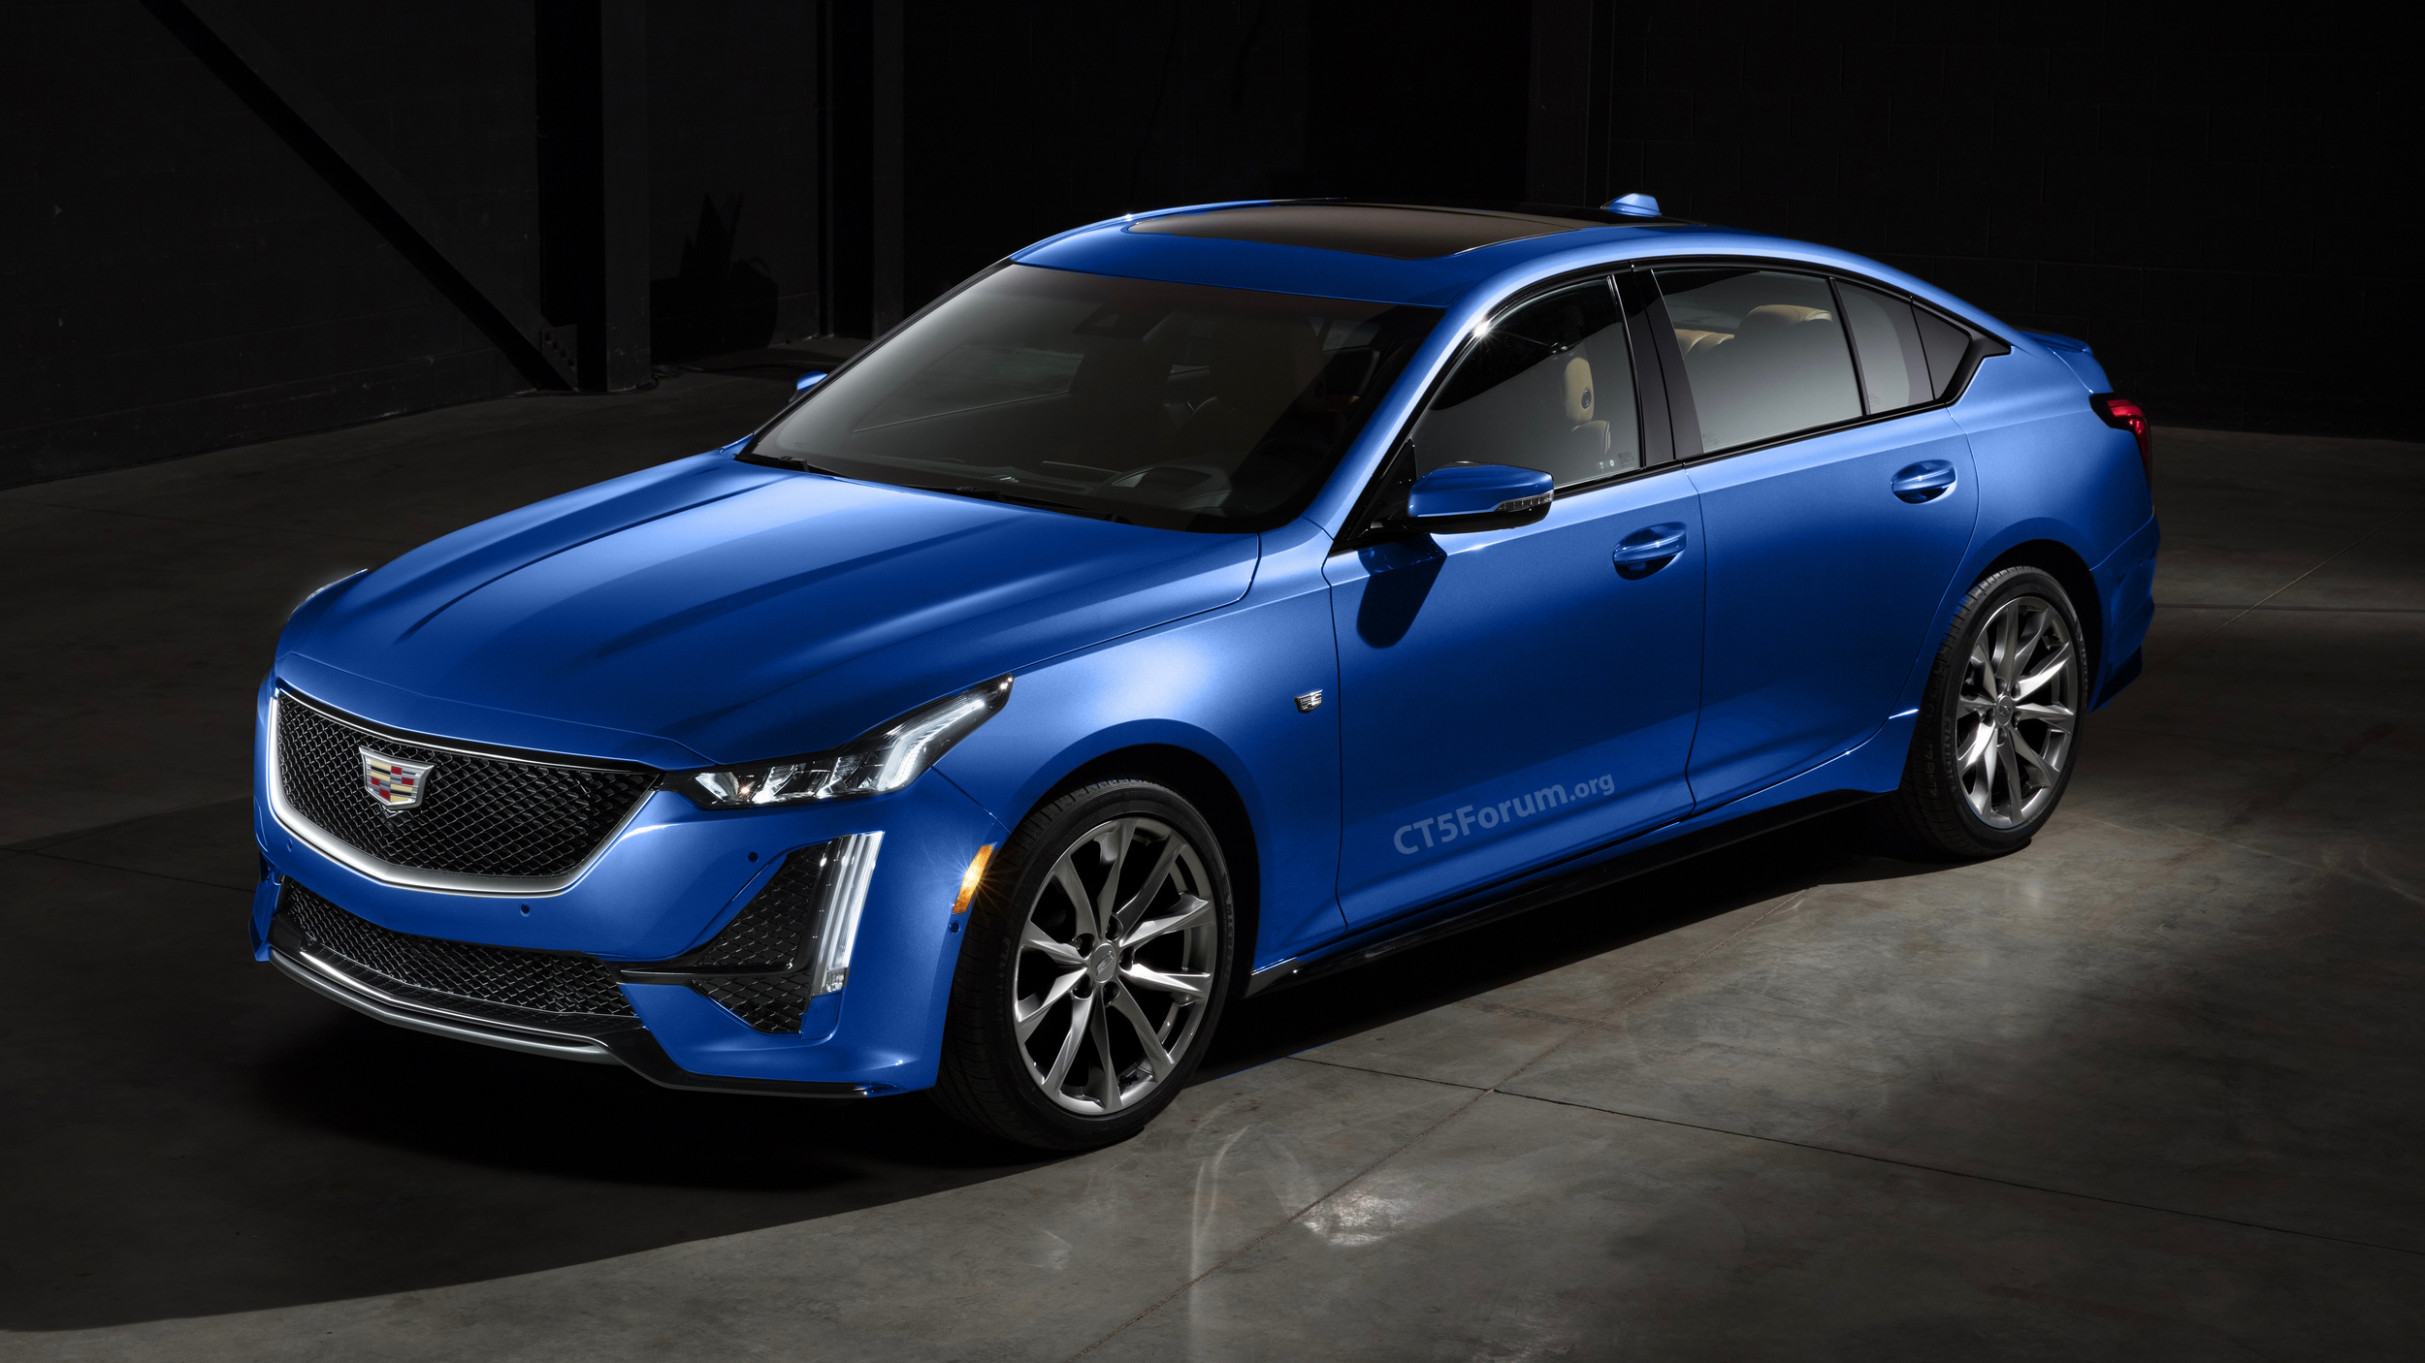 7 Cadillac CT7 Rendered In New Colors | GM Authority